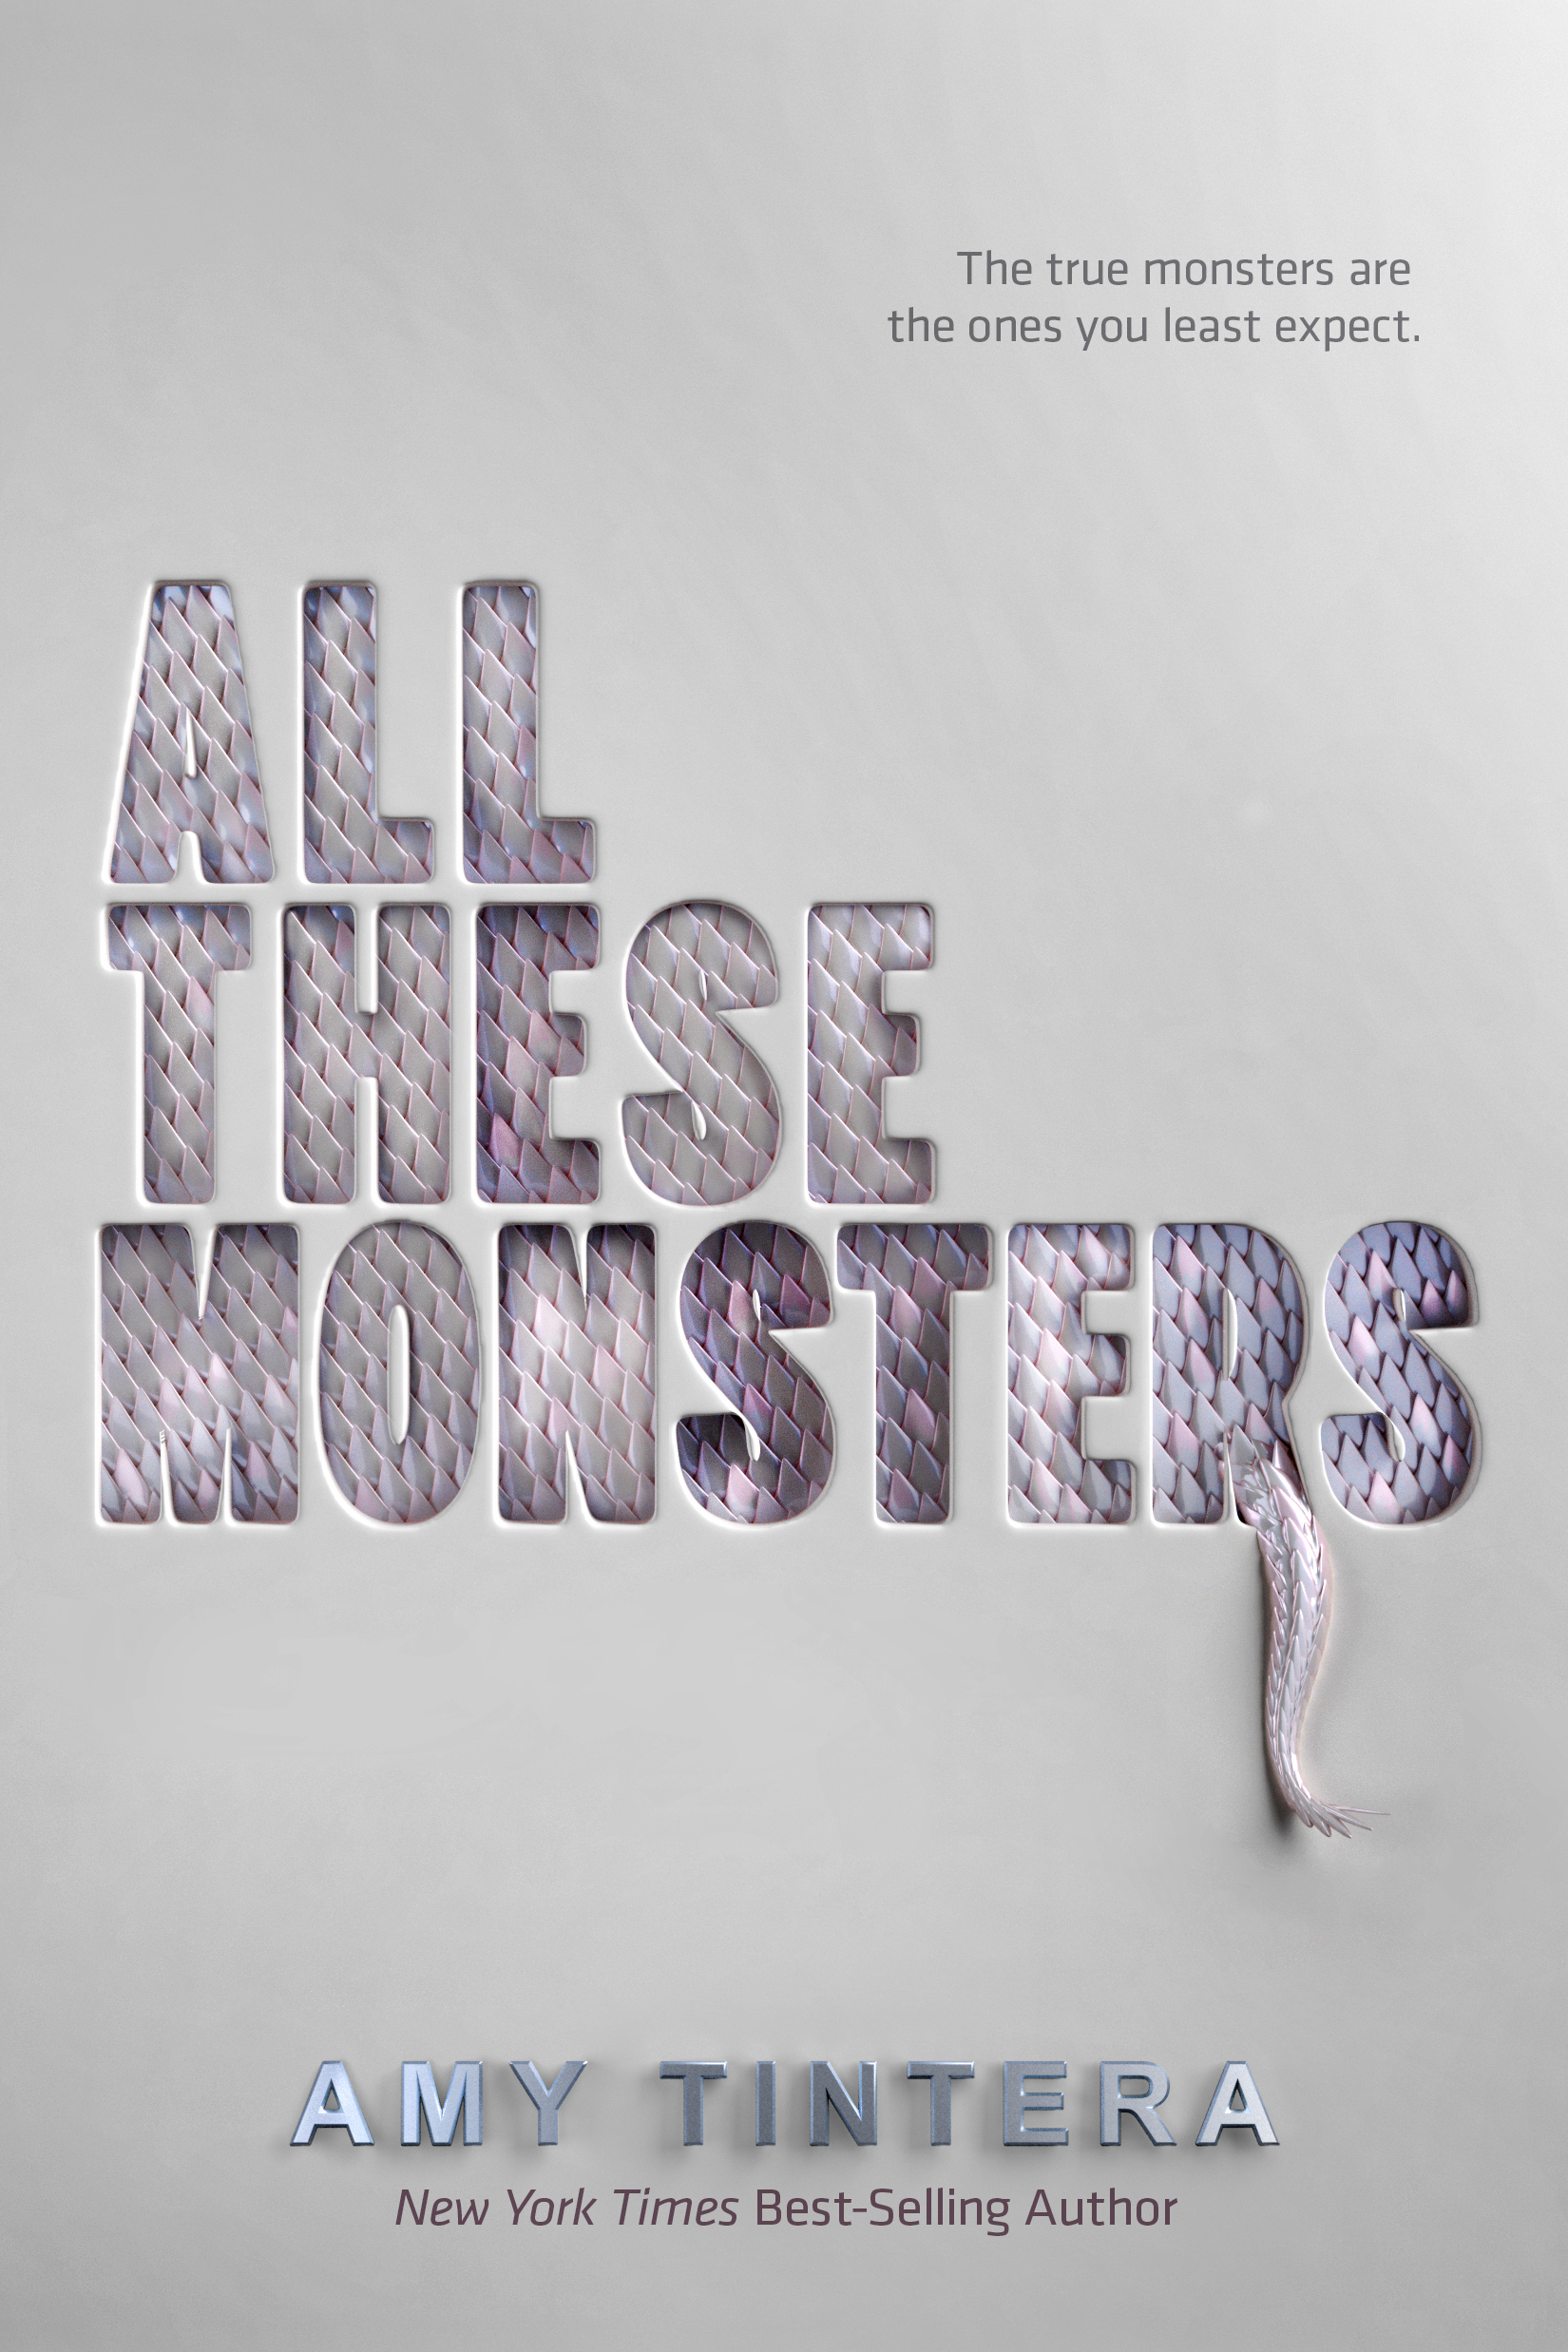 All These Monsters (Monsters, #1) by Amy Tintera